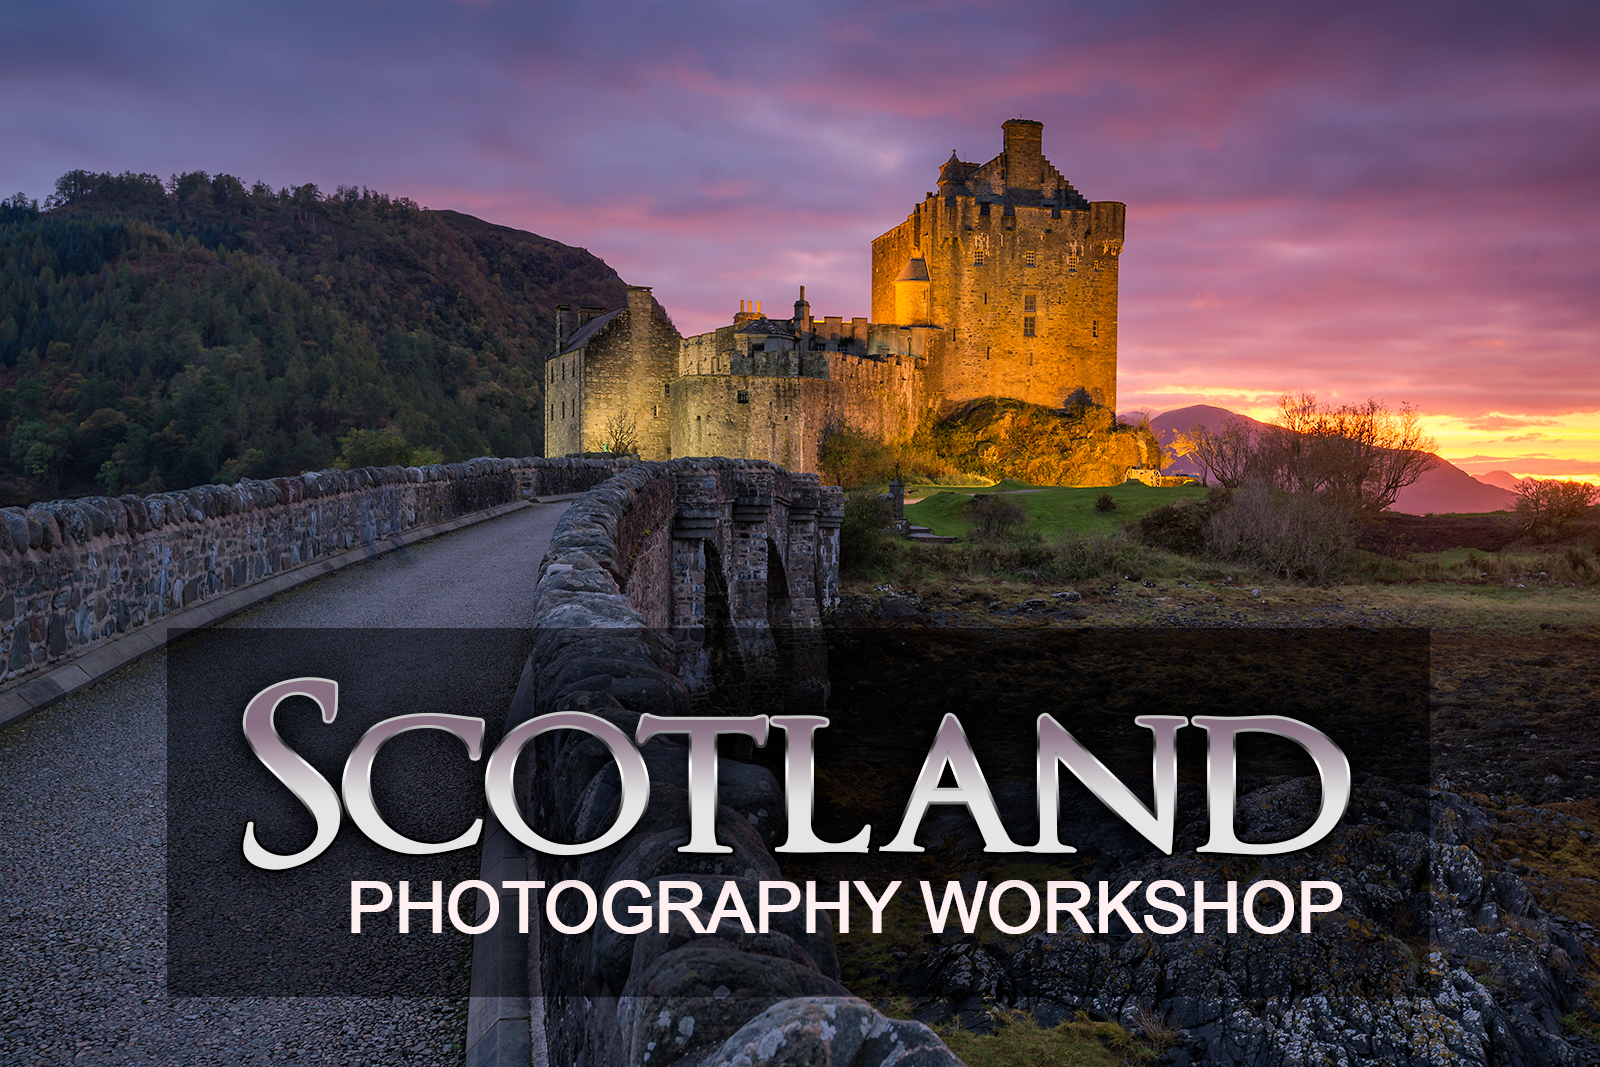 Scotland Photography Workshop second castle shoot at Eilean Donnan Castle.